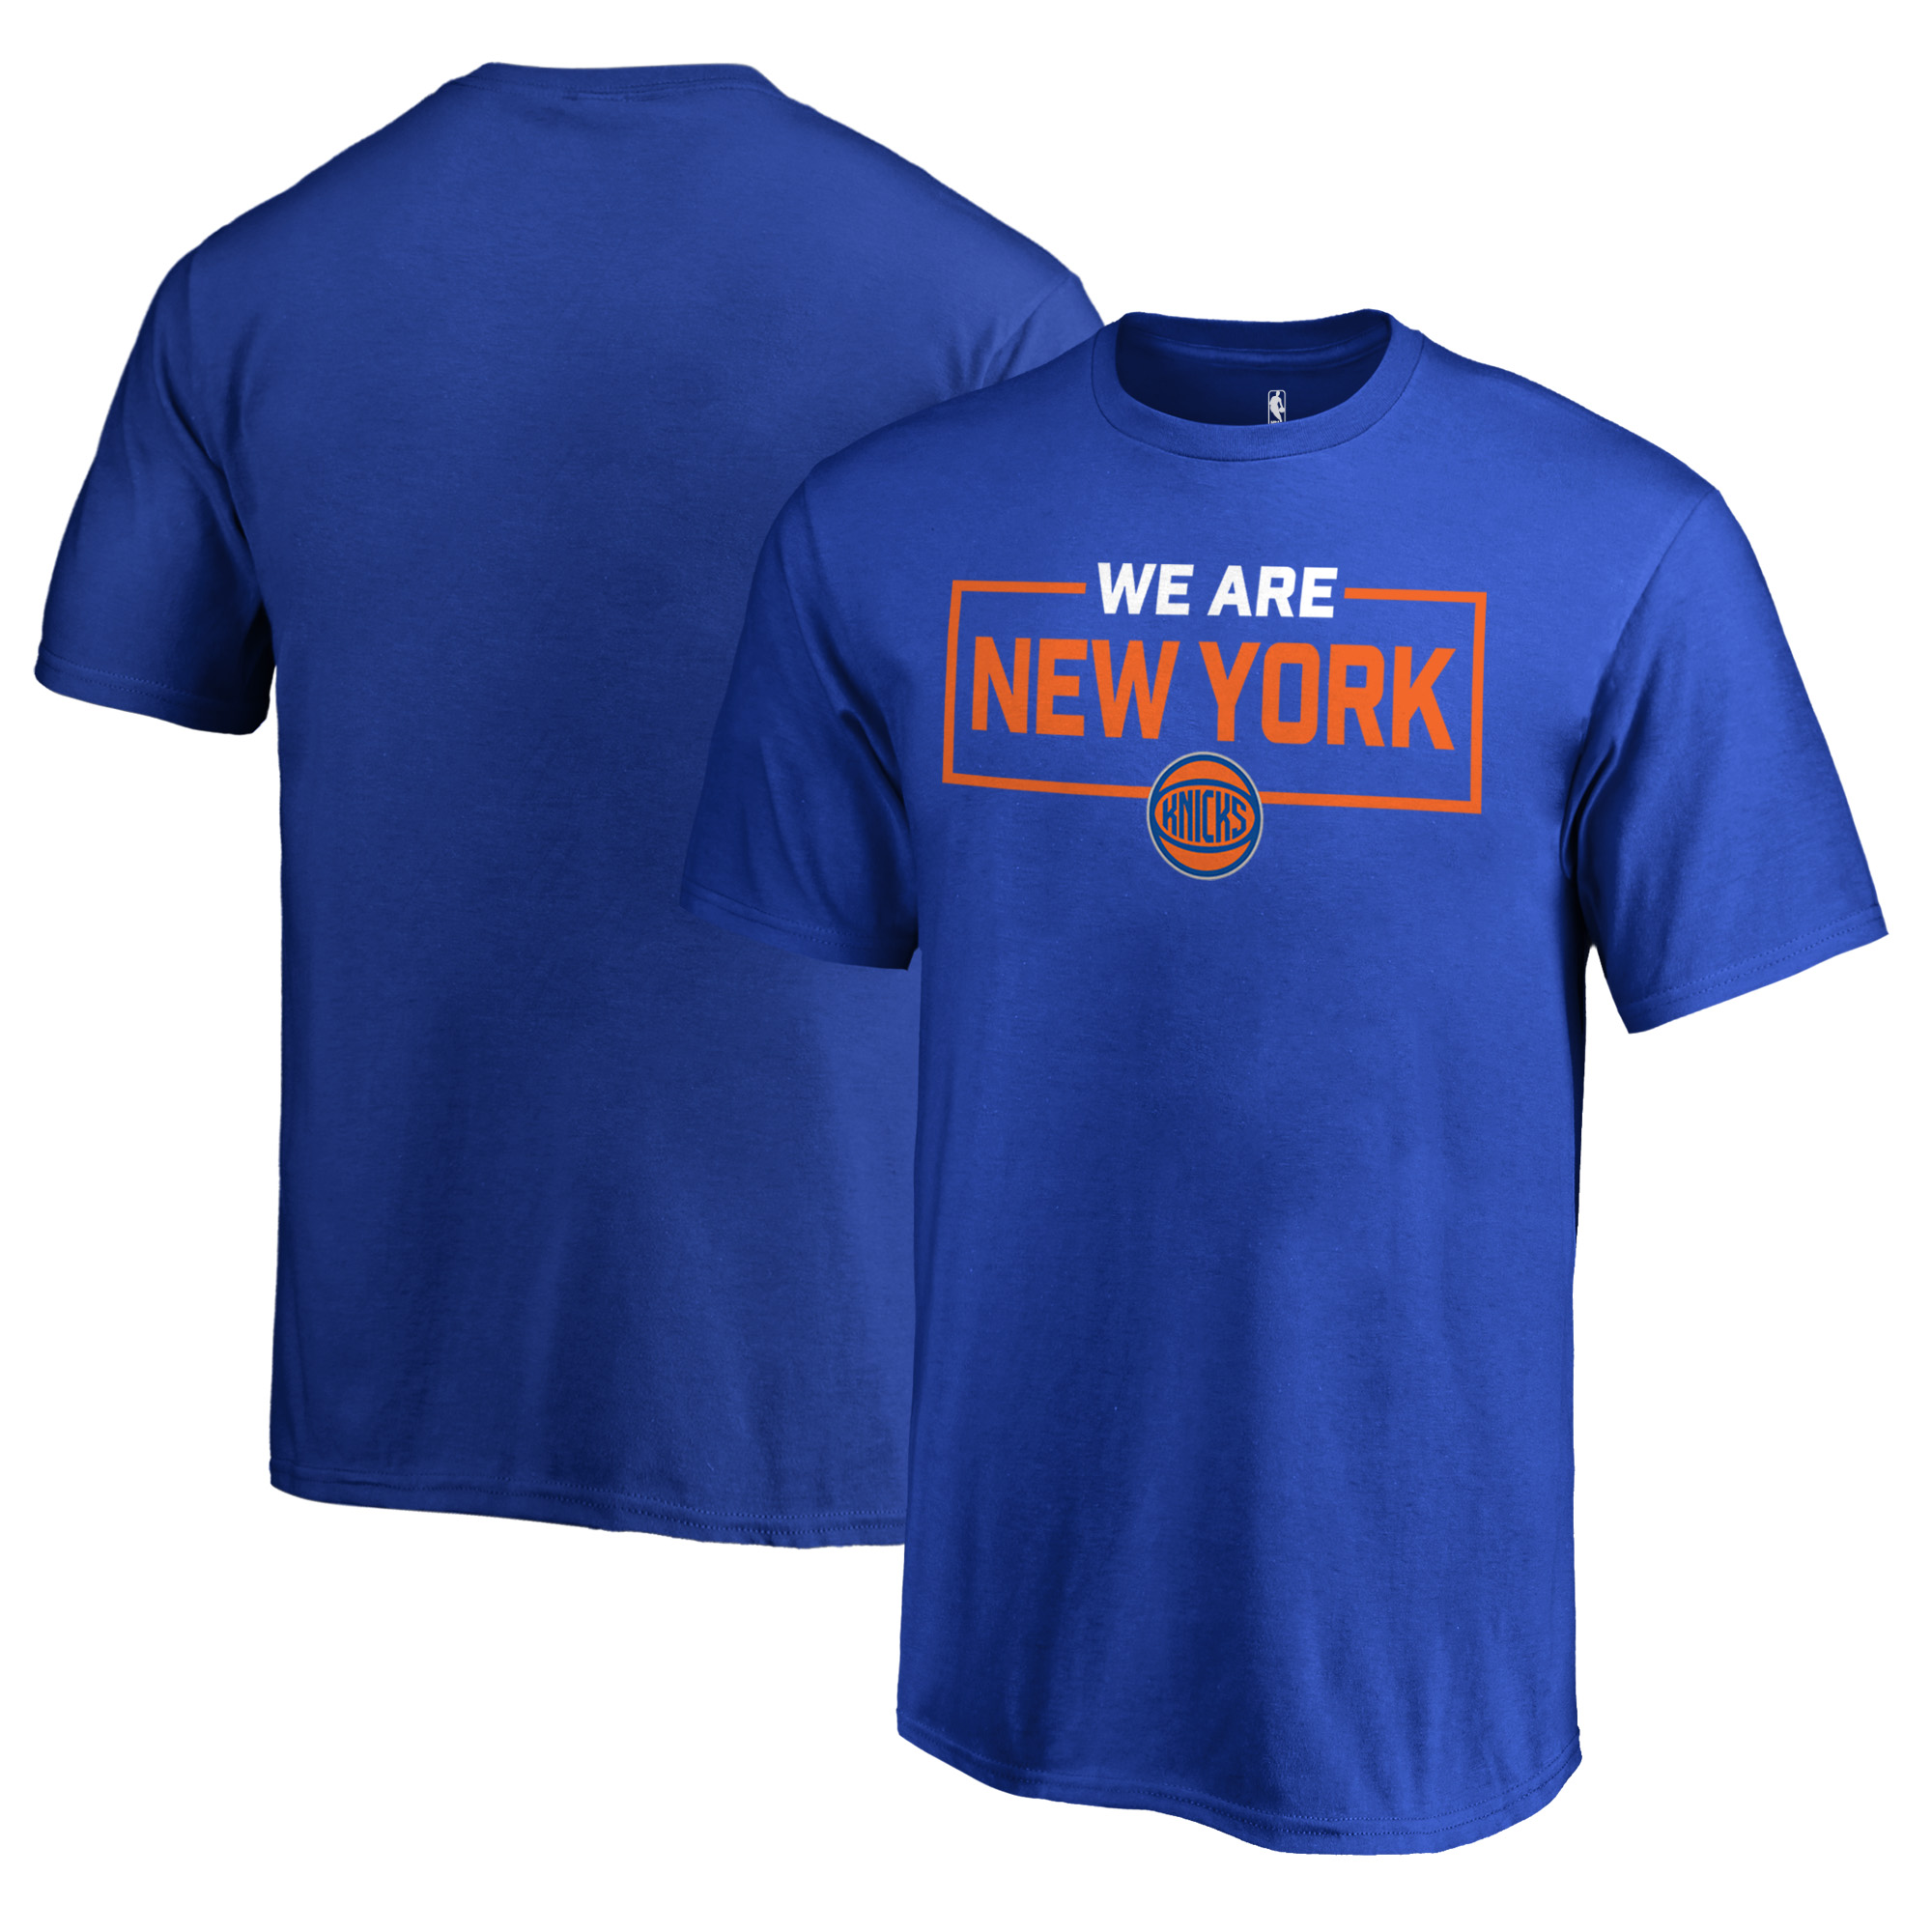 New York Knicks Fanatics Branded Youth We Are Iconic Collection T-Shirt - Blue